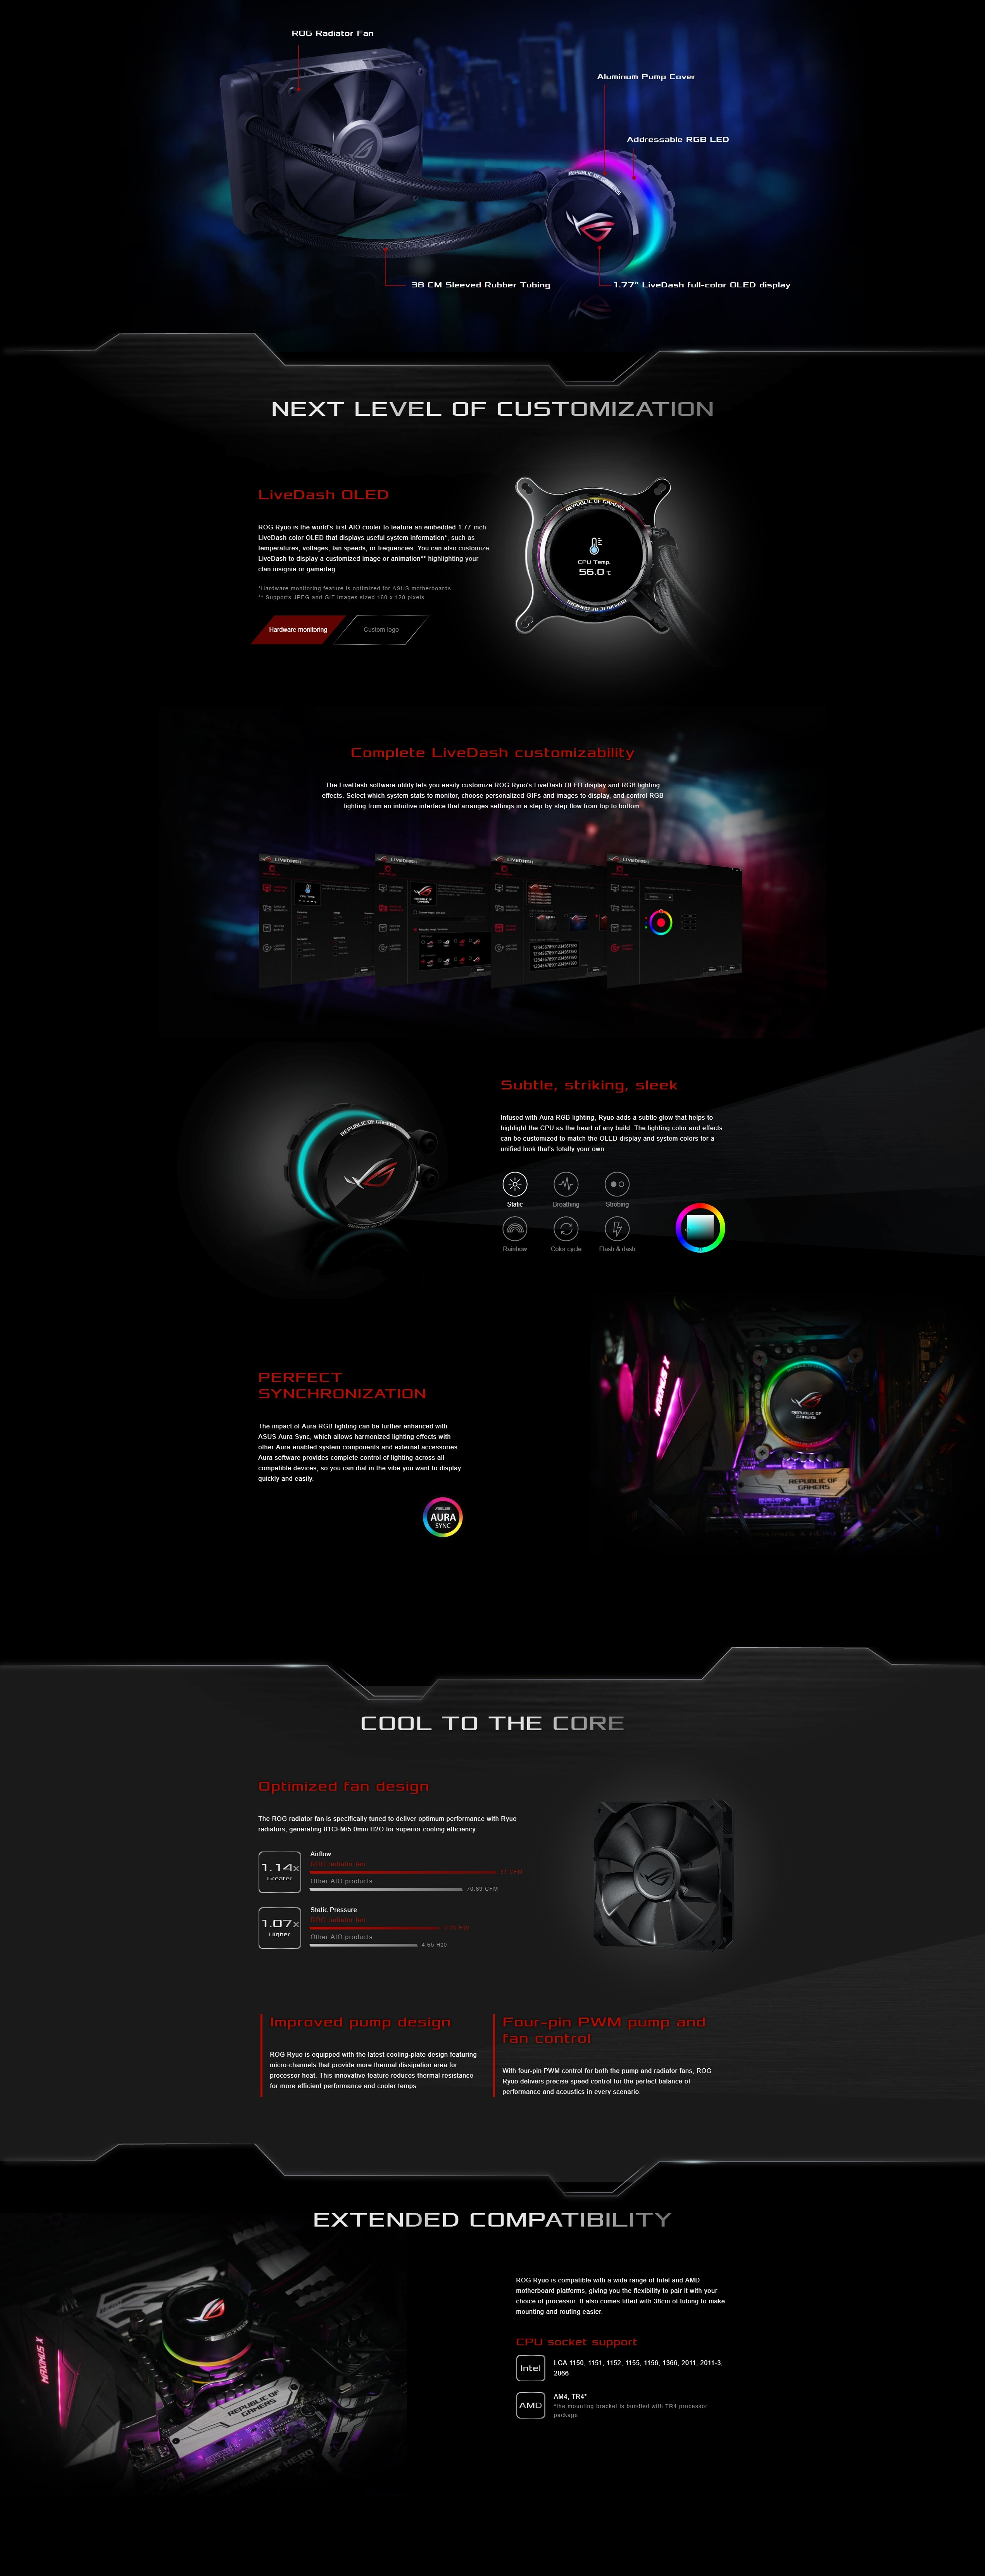 A large marketing image providing additional information about the product ASUS ROG RYUO 120 RGB AIO Liquid Cooler - Additional alt info not provided